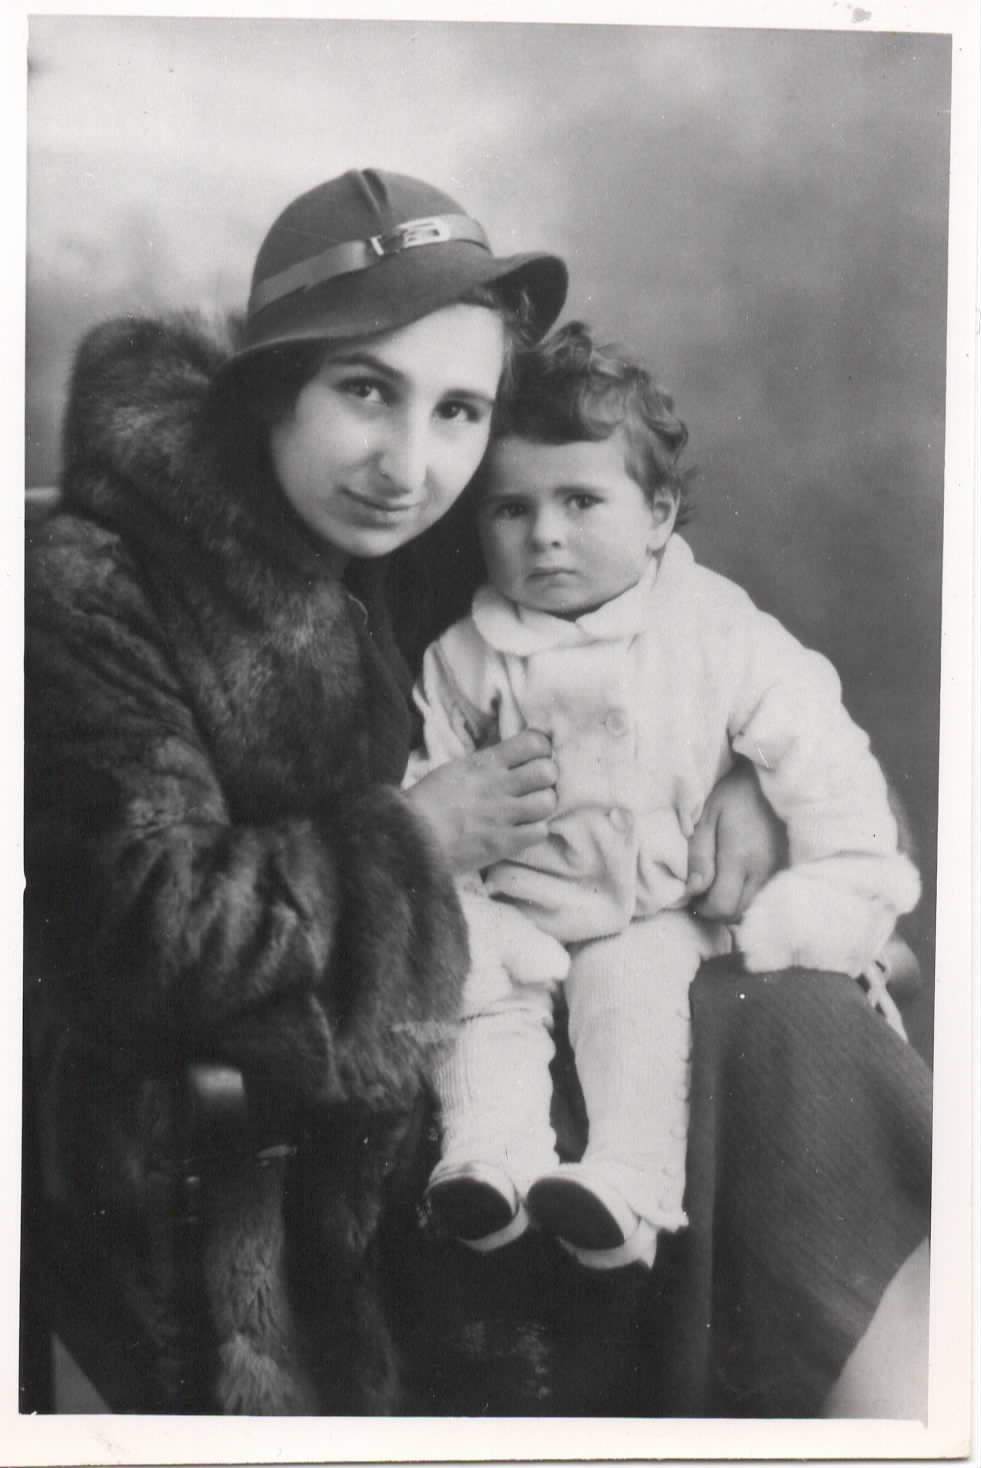 Eva in 1943 with her daughter, Sara's Aunt